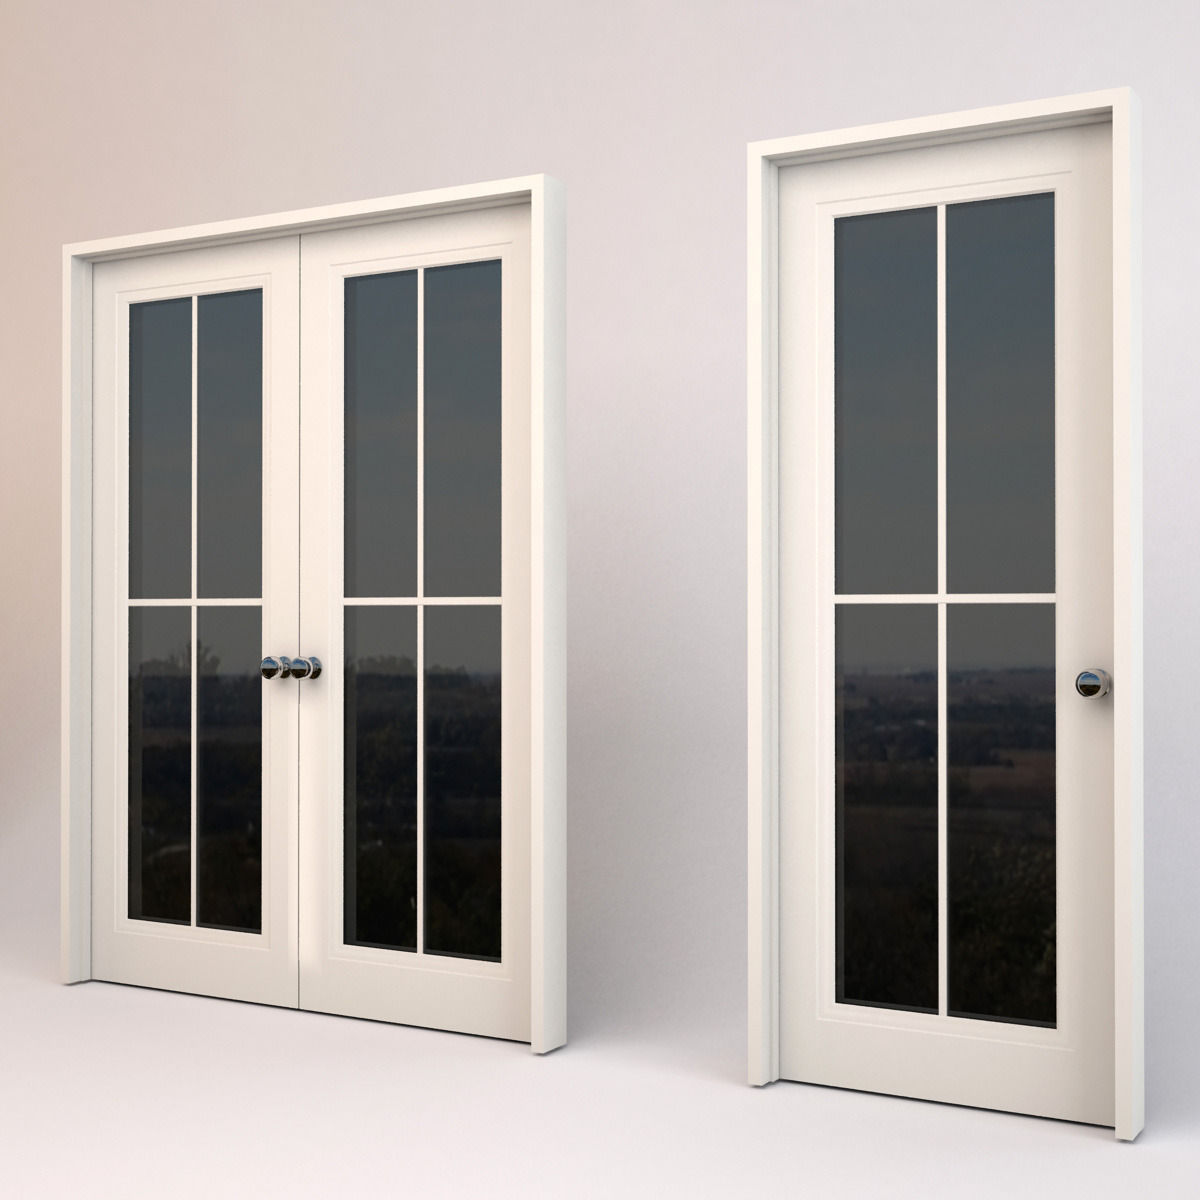 windows and doors 3d model max obj 3ds fbx c4d